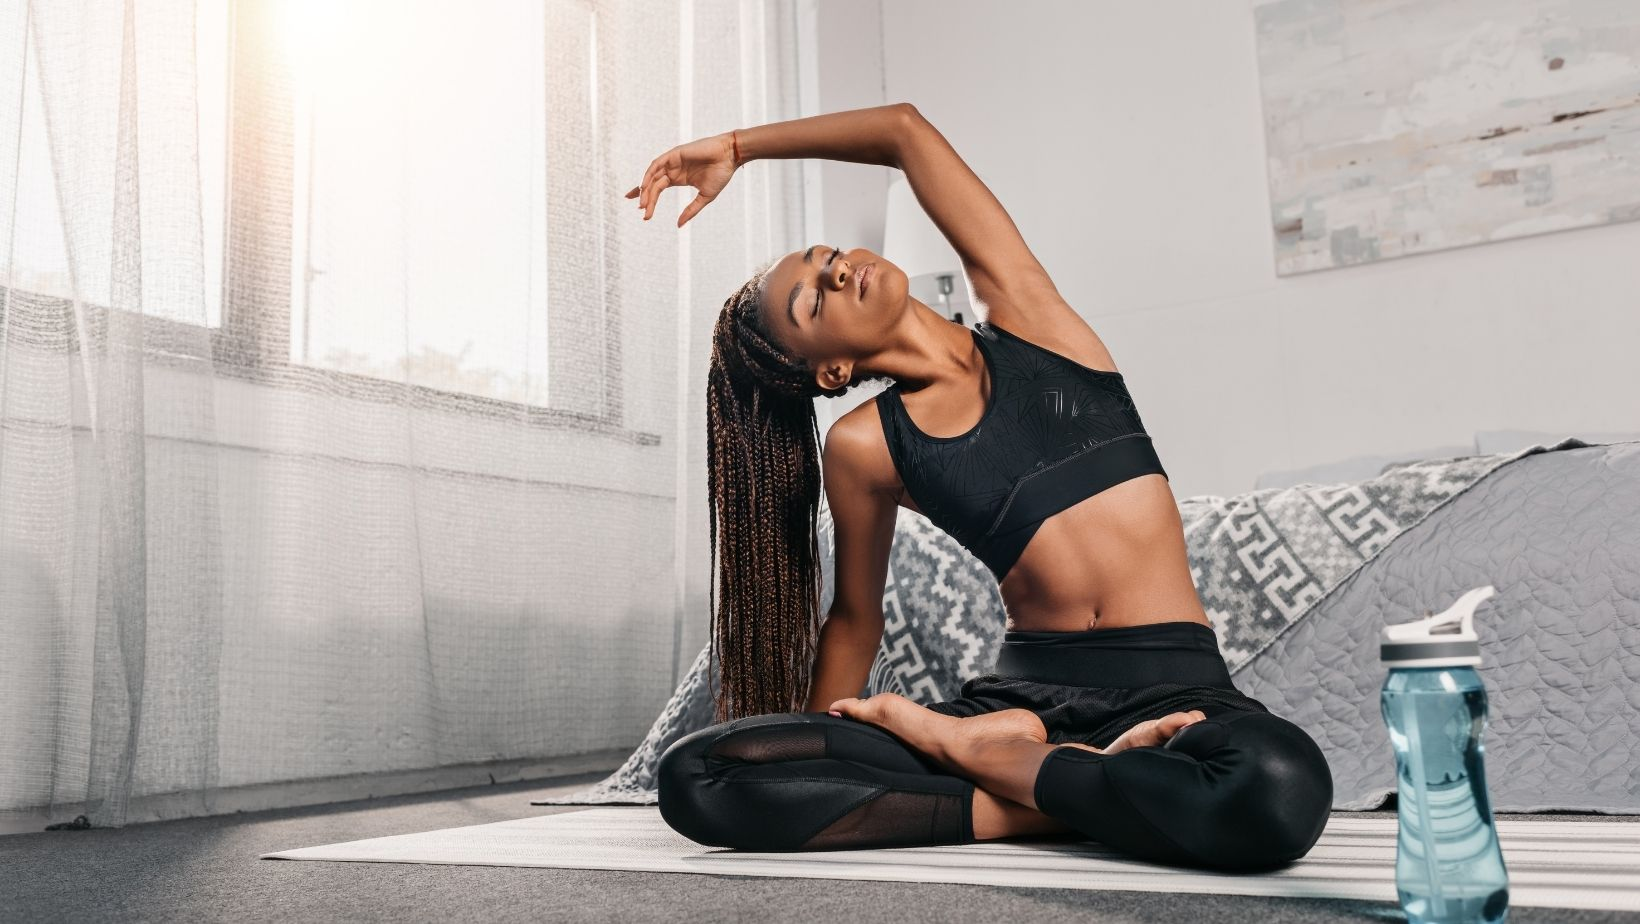 Tips to Avoid Common Mistakes if You are New to Yoga